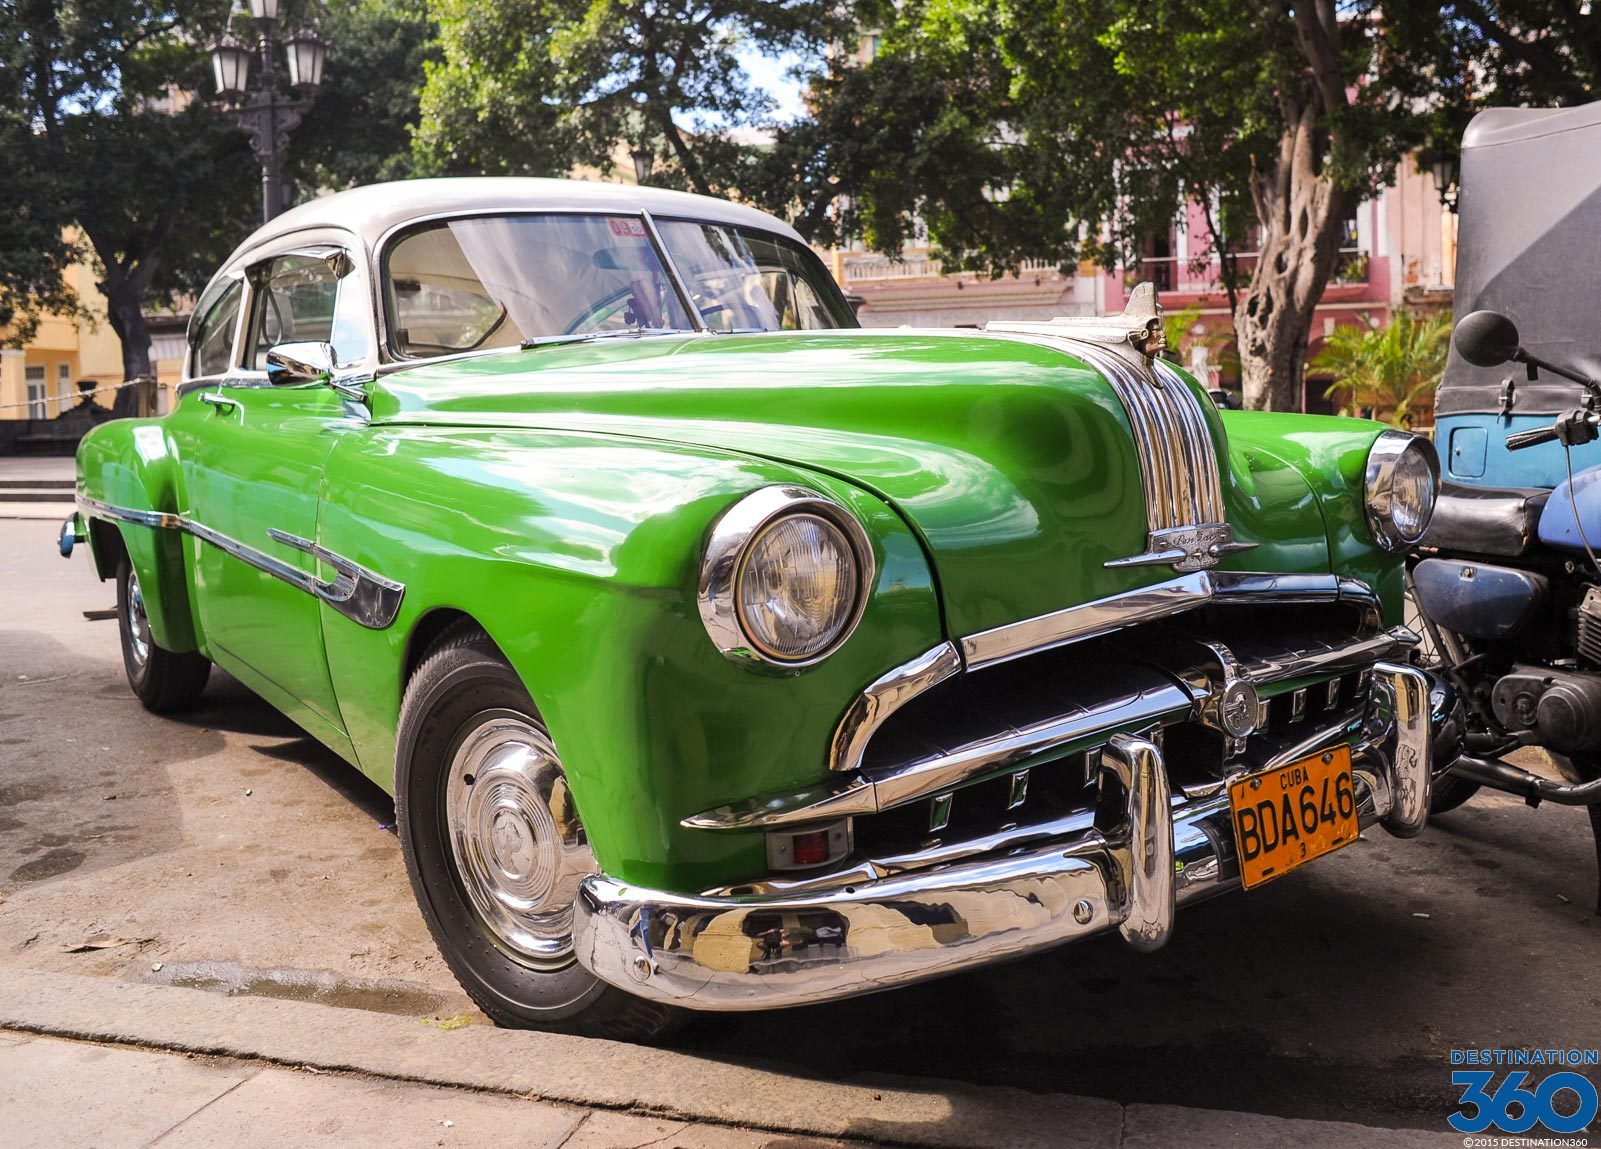 Old Cars In Cuba - Pictures of old cars